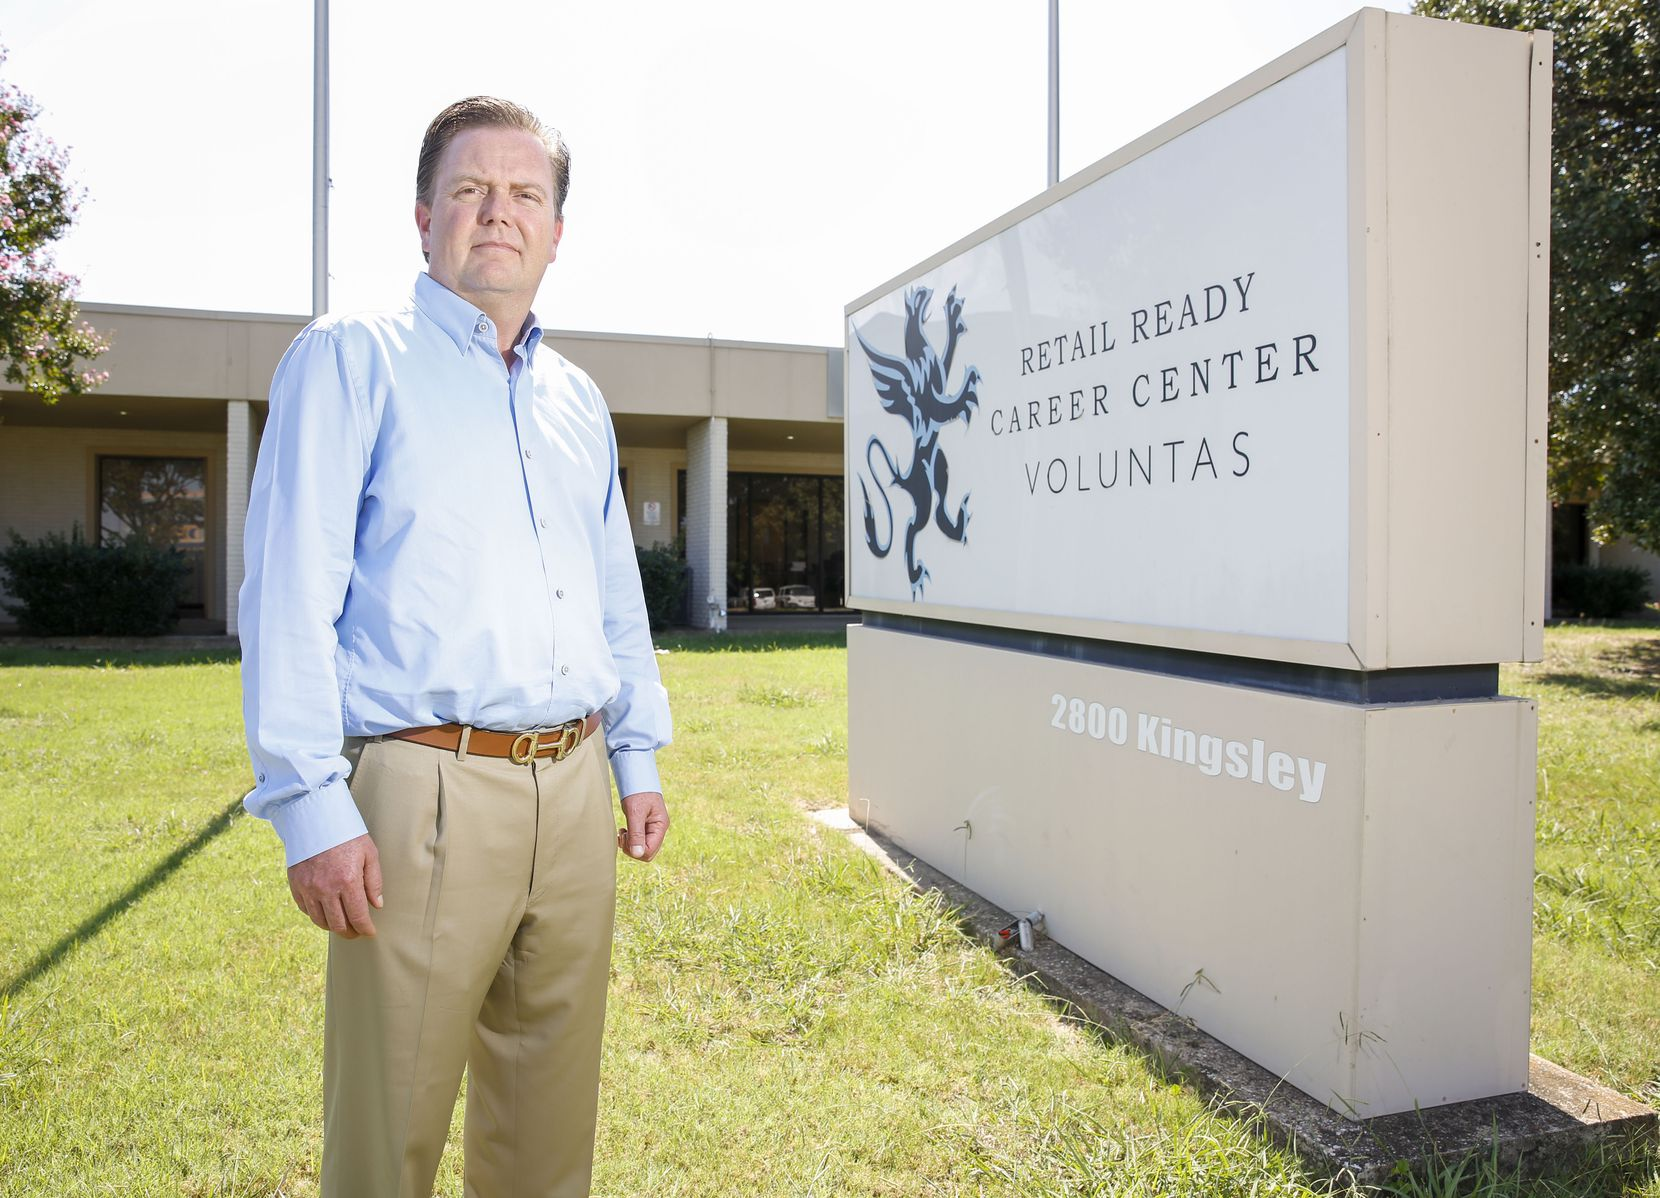 Jonathan Davis, owner of the now-defunct Retail Ready Career Center, stands outside the building that housed his business in Garland in September 2019. He was convicted in federal court of scamming the government's GI Bill out of about $70 million,